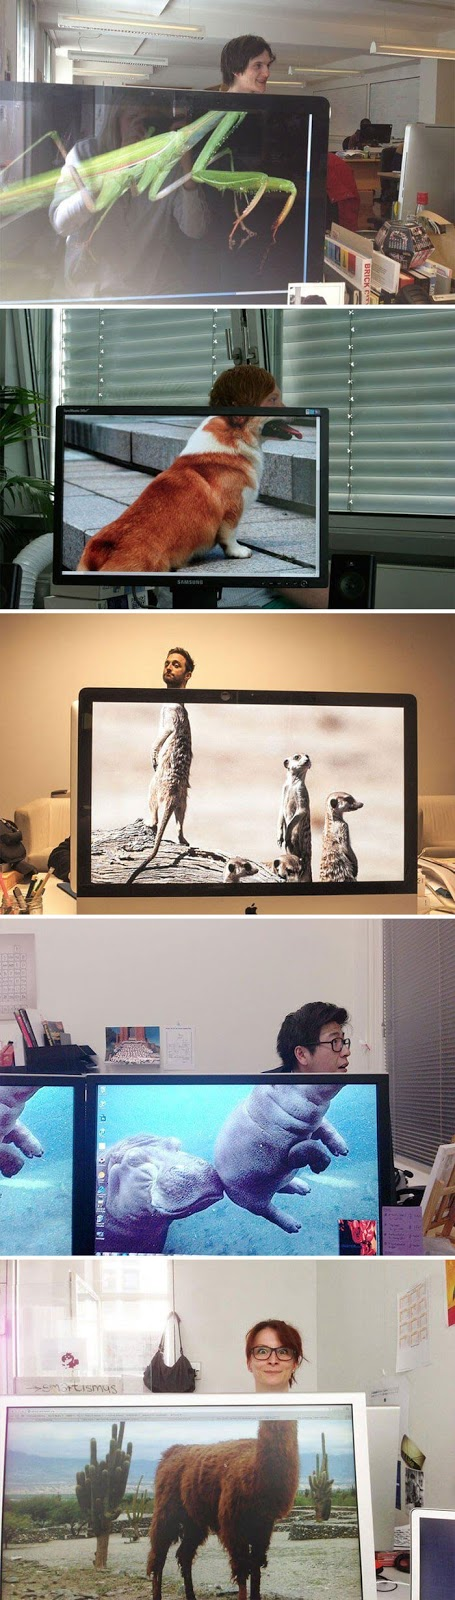 28 Creatively Hilarious Desktop Wallpapers We Wished We Had Thought Of First - Coworkers Adding Heads To Animals On Desktop Background